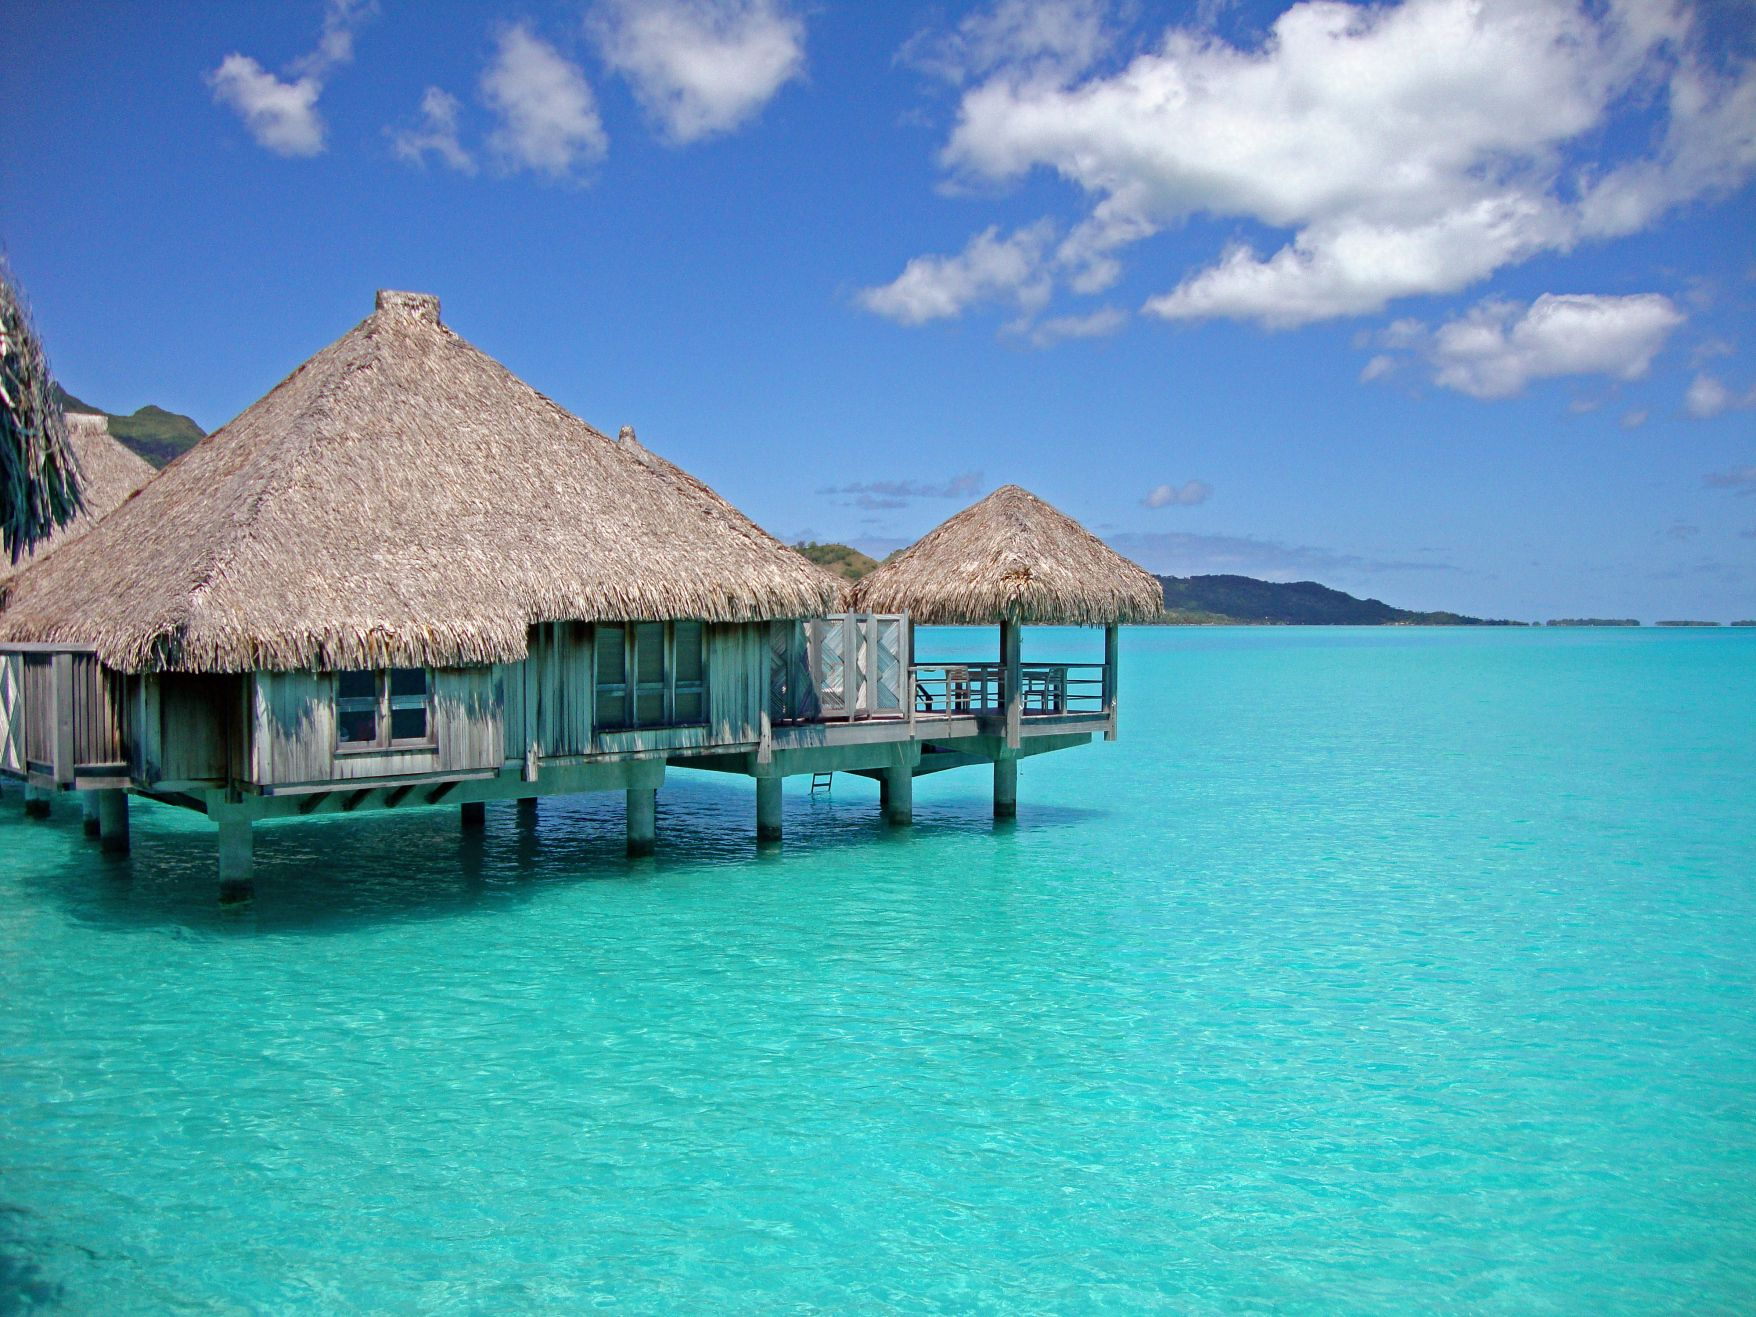 Unique Fiji Overwater Bungalow Check More At Http Www Jnnsysy